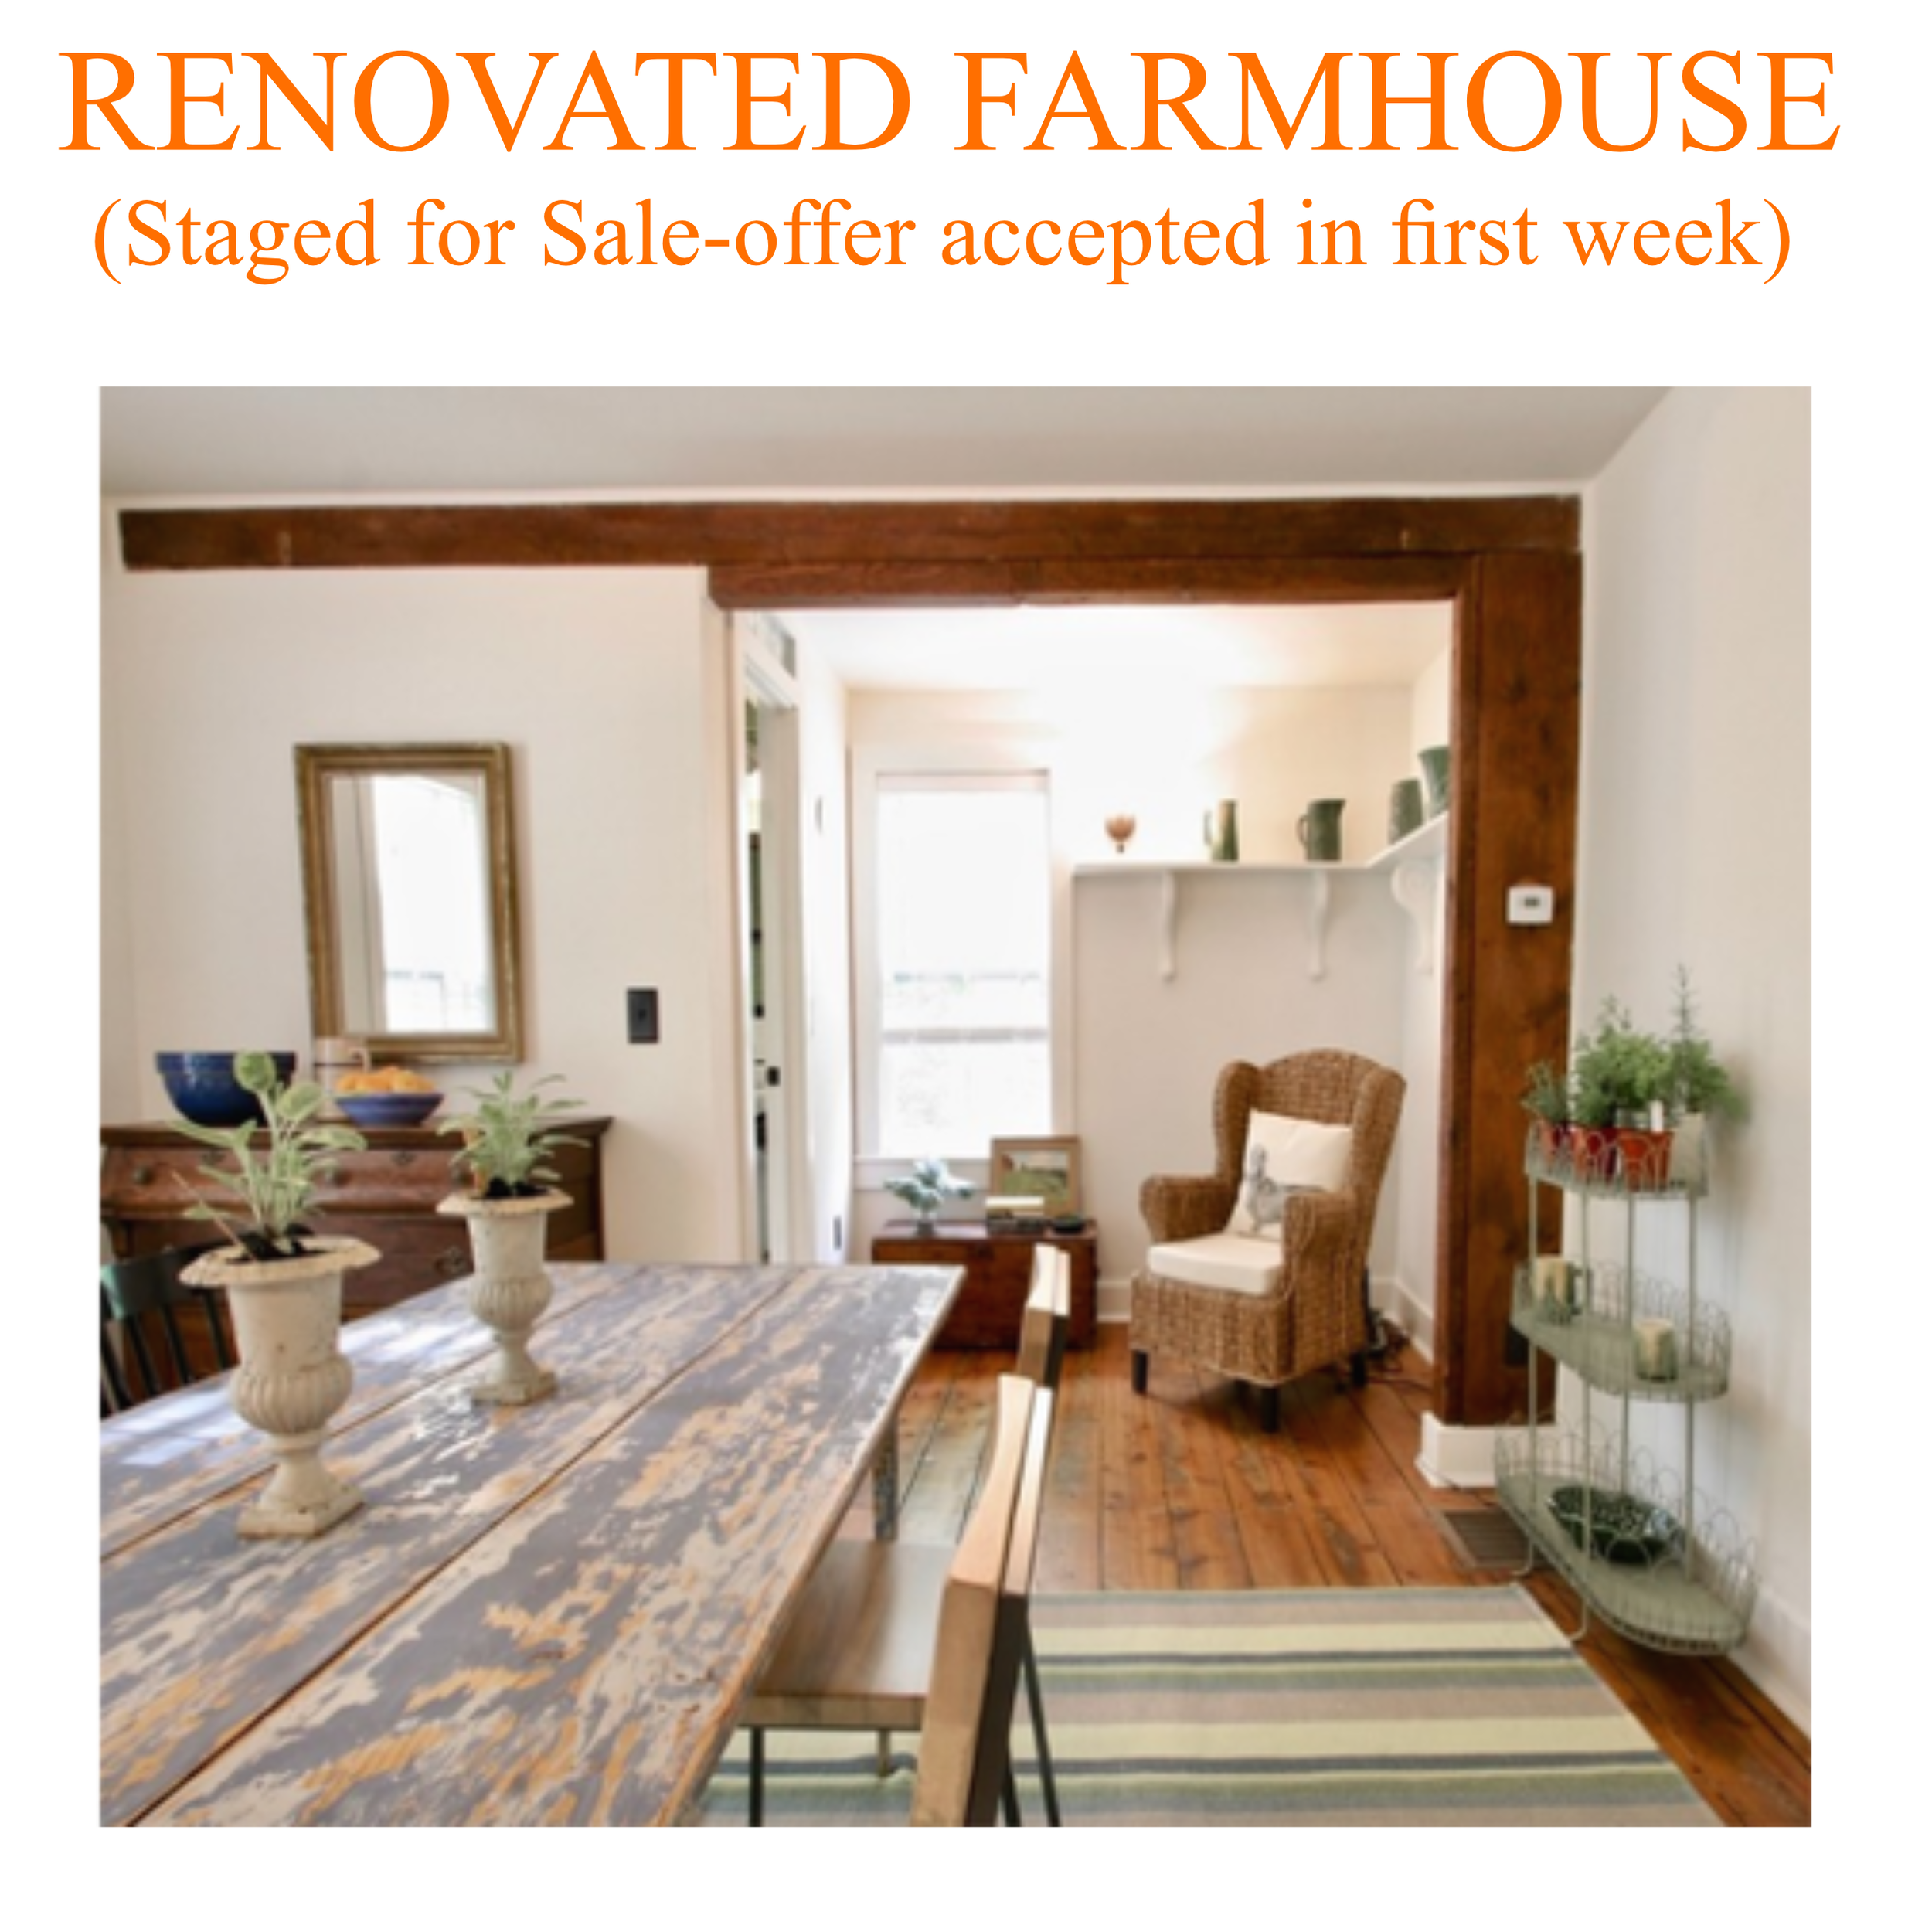 Renovated Farm house.png